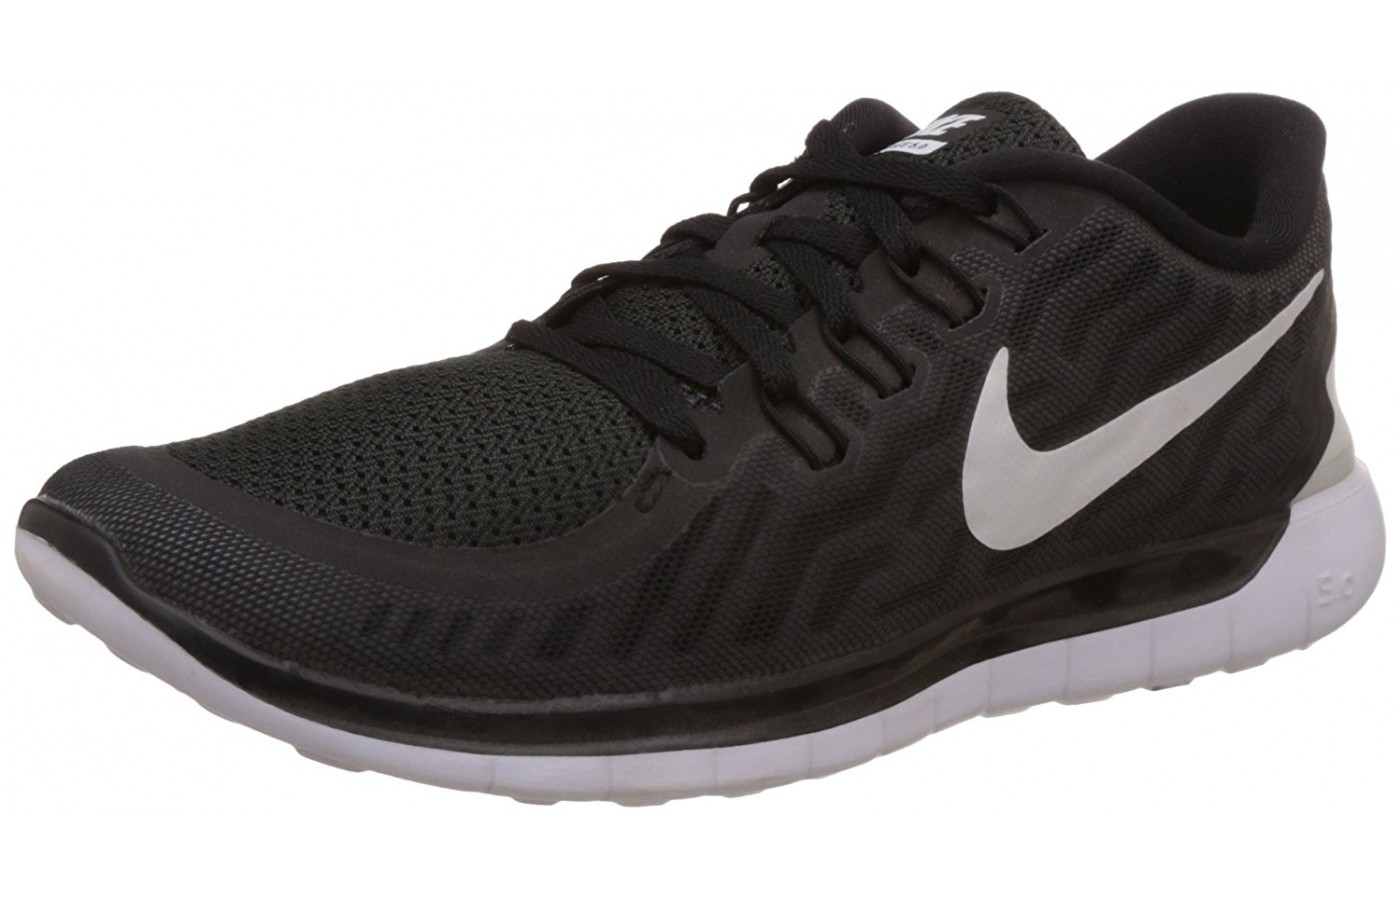 7622faa14ab Nike Free 5.0 Reviewed   Tested for Performance in 2019